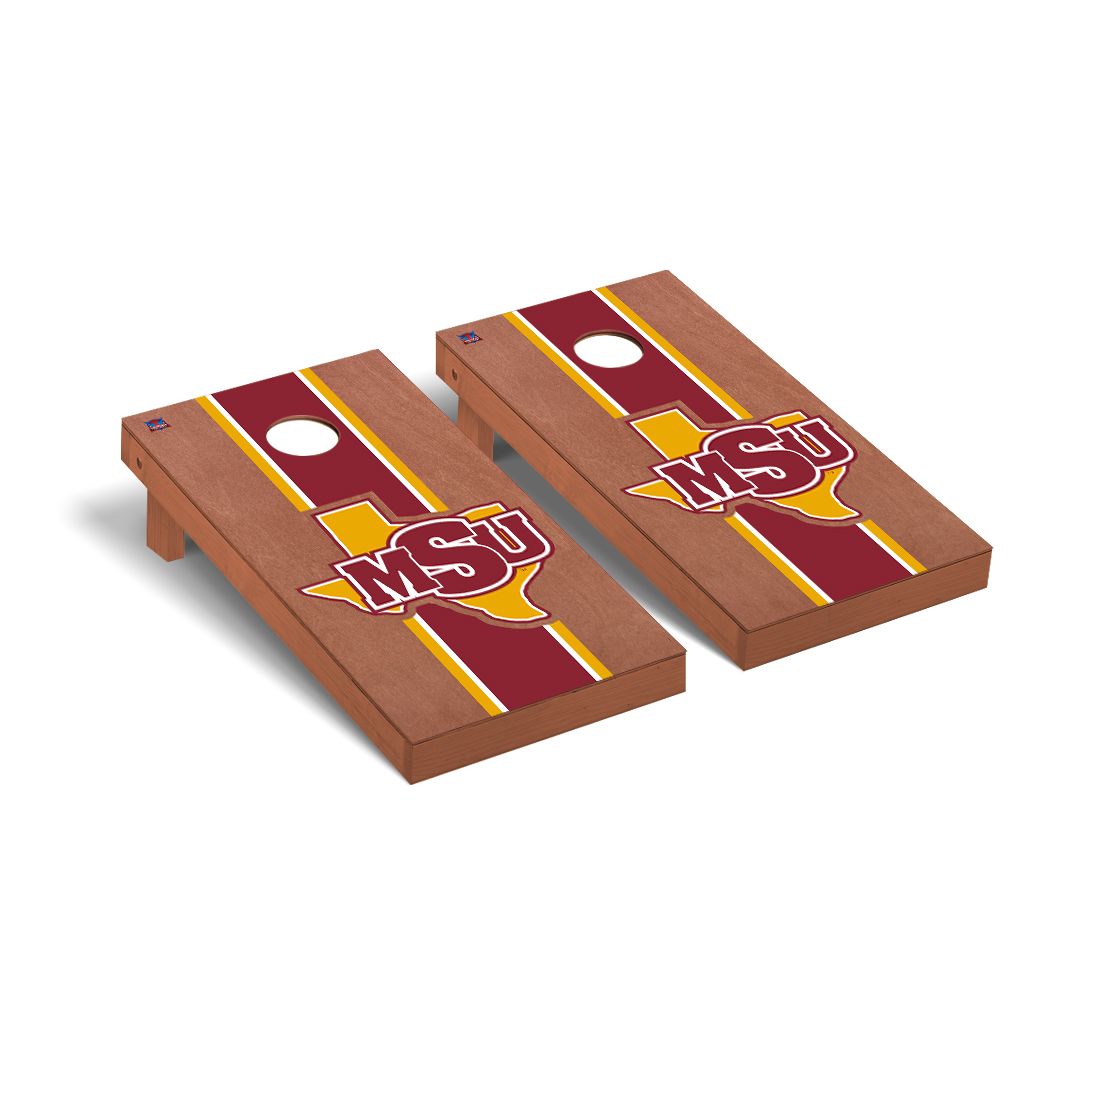 Midwestern State MSU Mustangs Cornhole Game Set Rosewood Stained Stripe Version